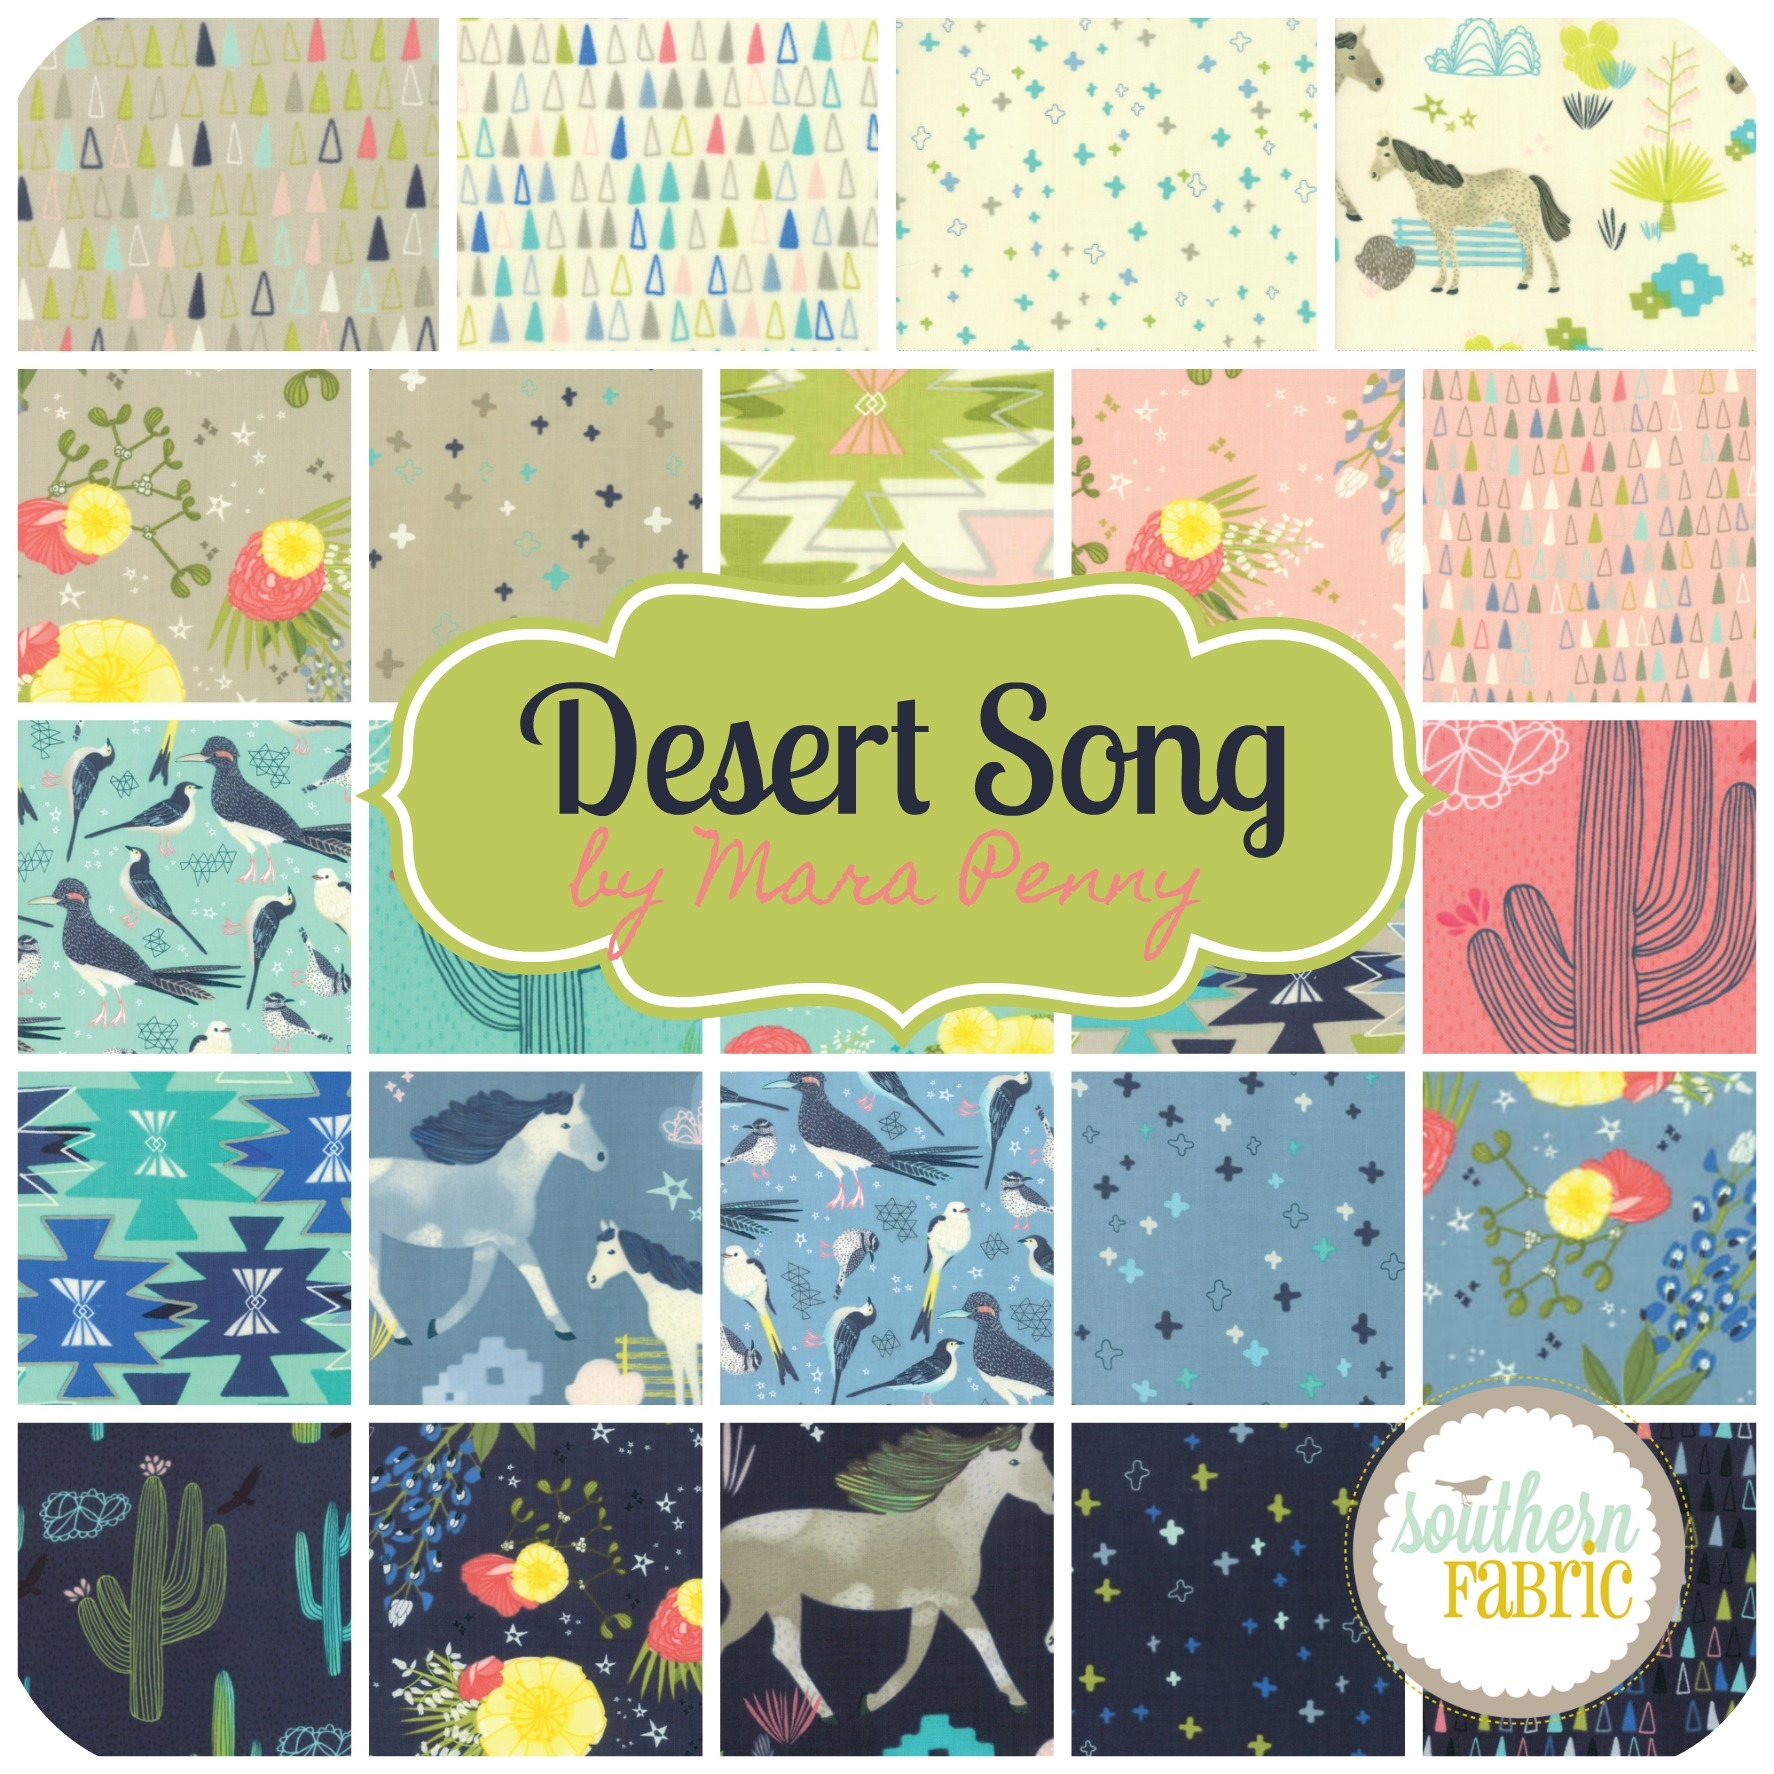 Desert Song by Mara Penny